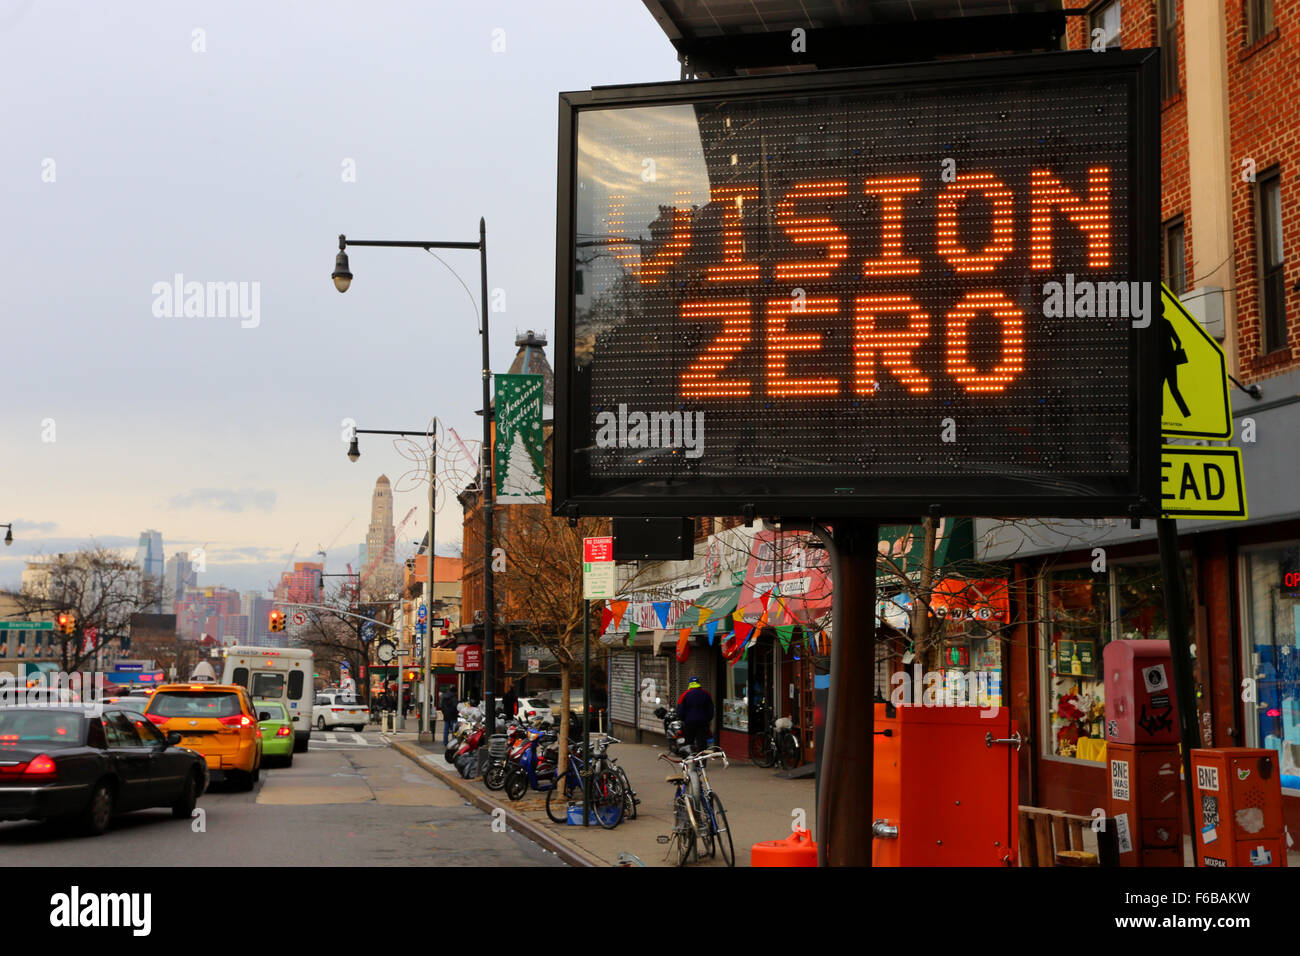 New York City's Vision Zero traffic safety project - Stock Image